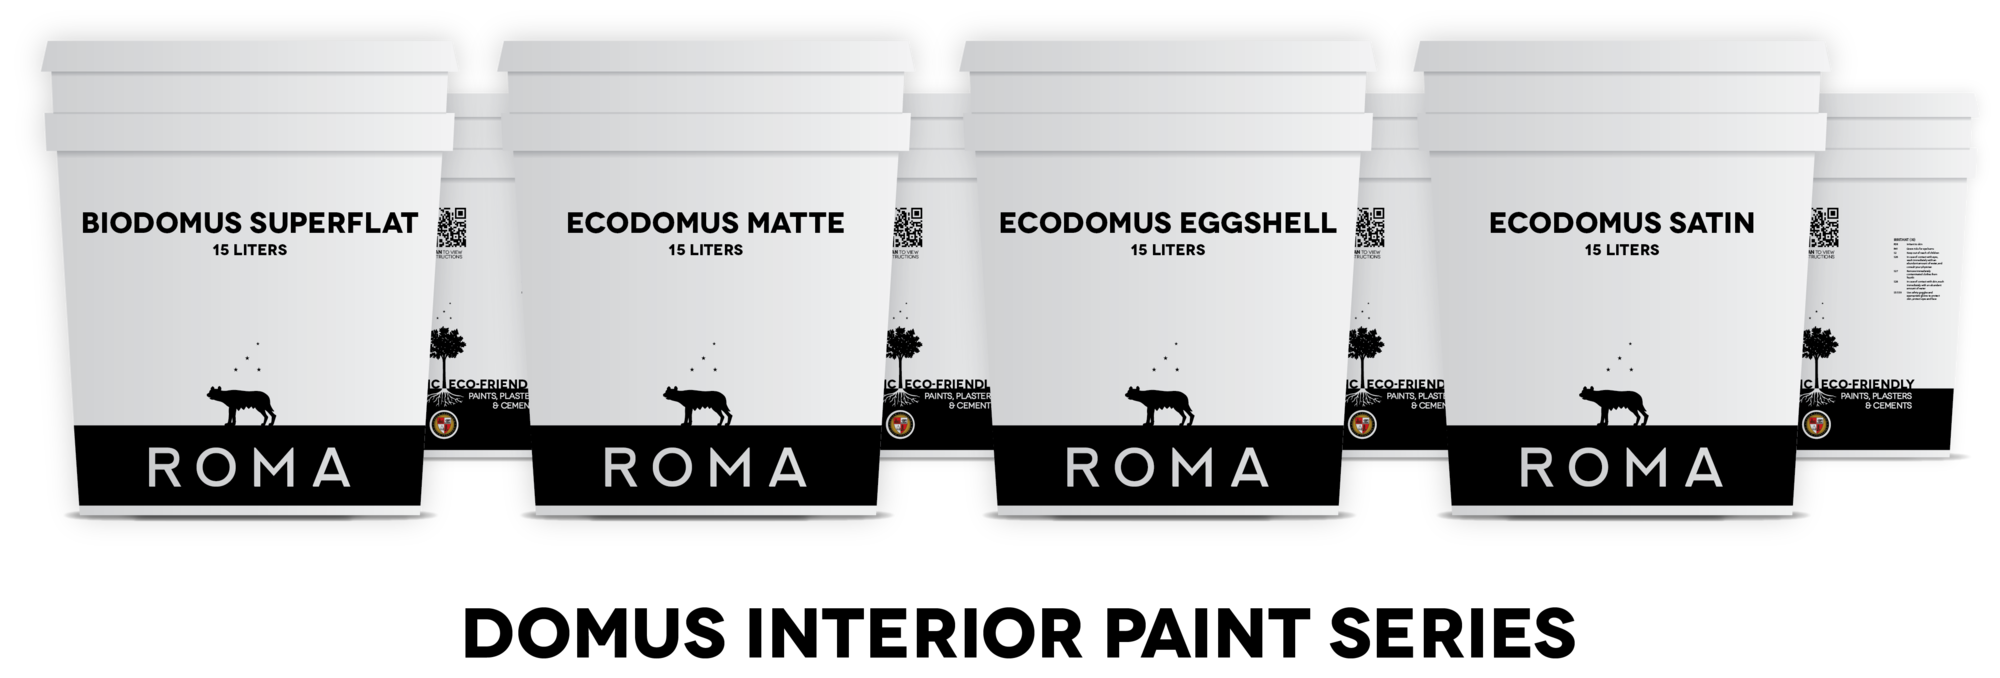 Domus Mineral Paints. Image Courtesy of ROMA via Cradle to Cradle